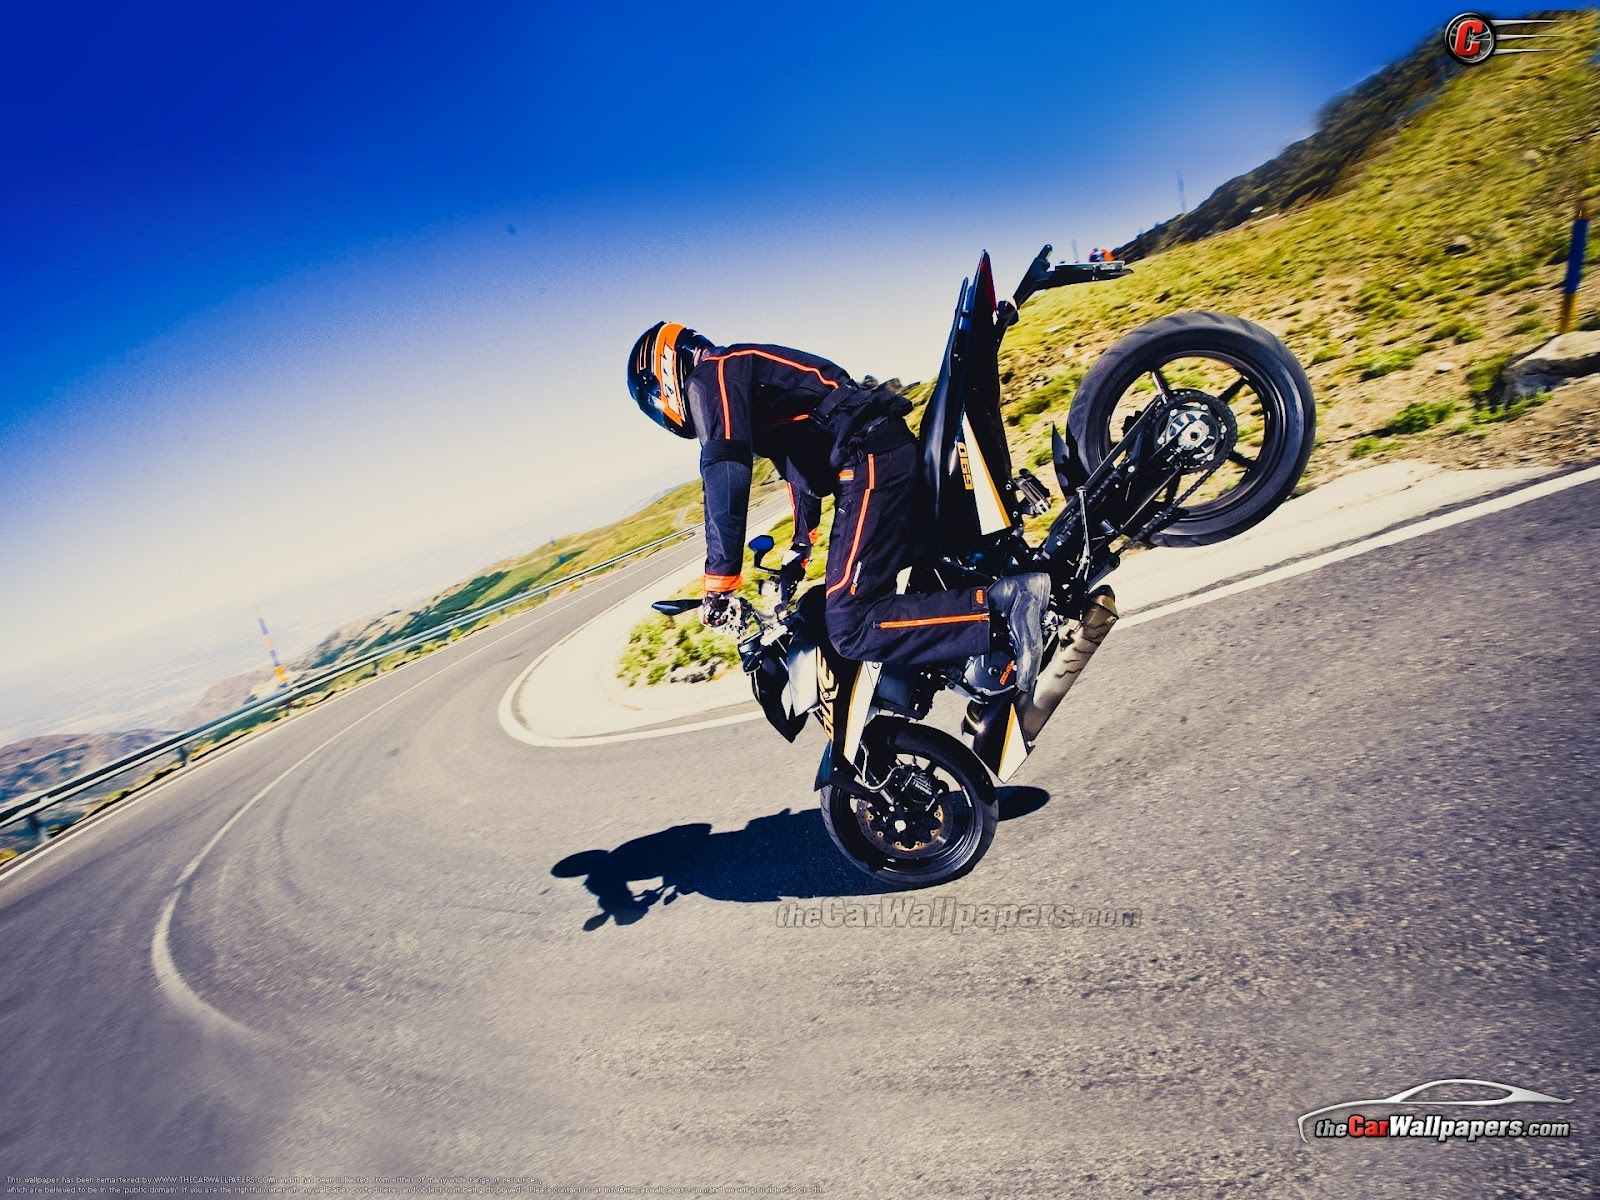 hd wallpapers: bike stunt